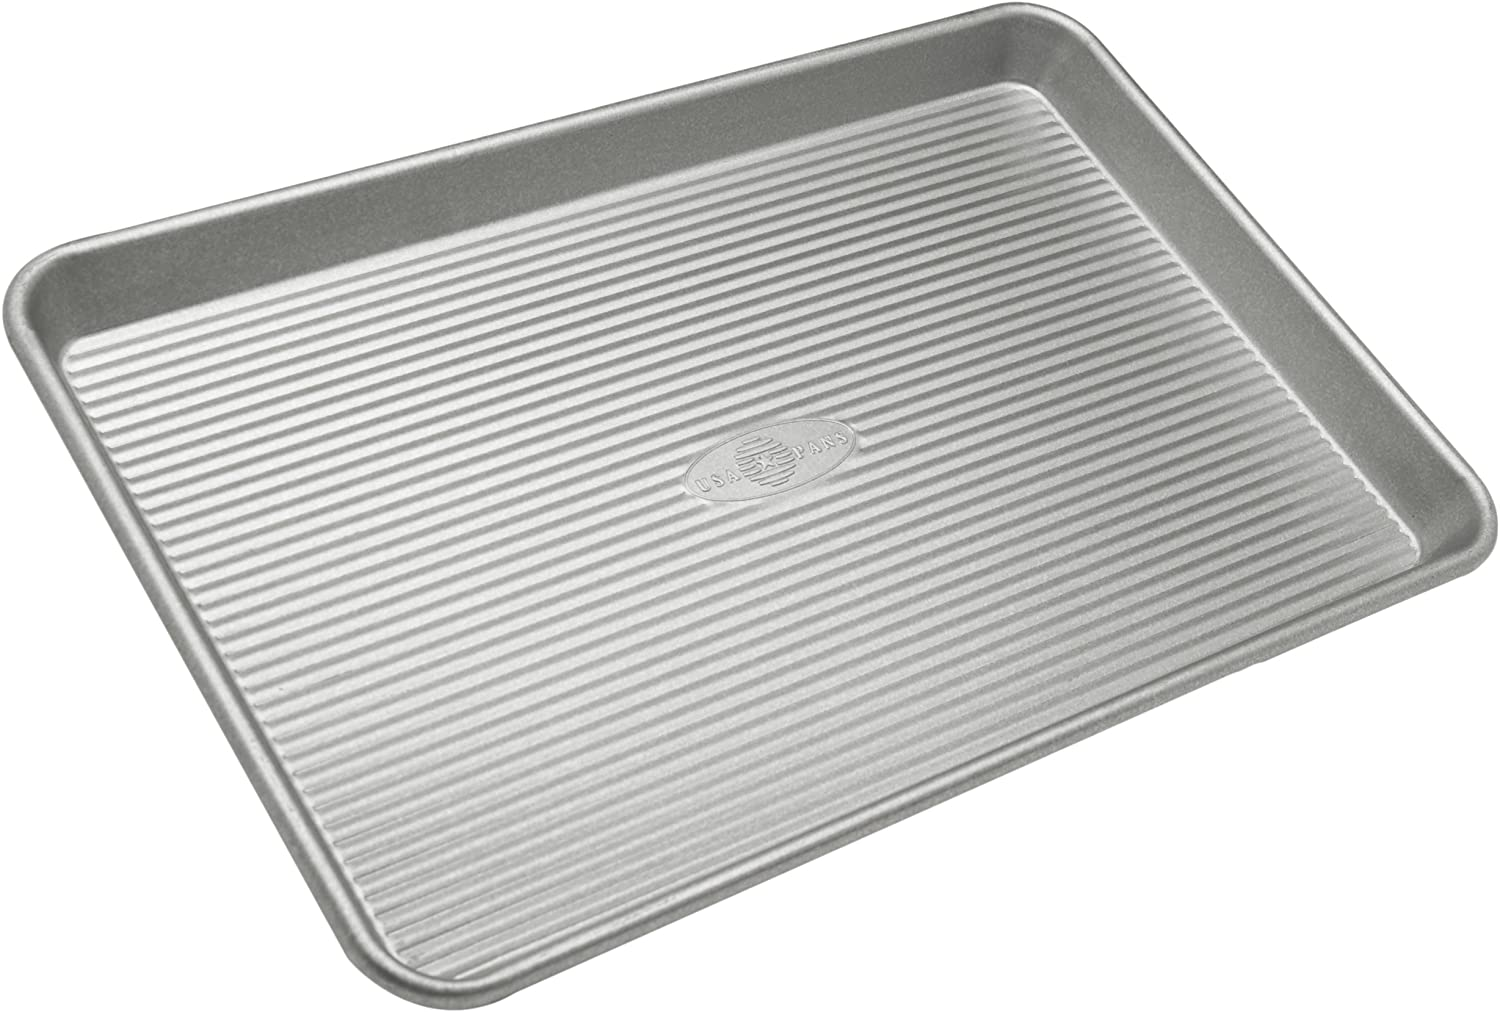 Amazon Com Usa Pan Bakeware Jelly Roll Pan Warp Resistant Nonstick Baking Pan Made In The Usa From Aluminized Steel Jelly Roll Pans Kitchen Dining